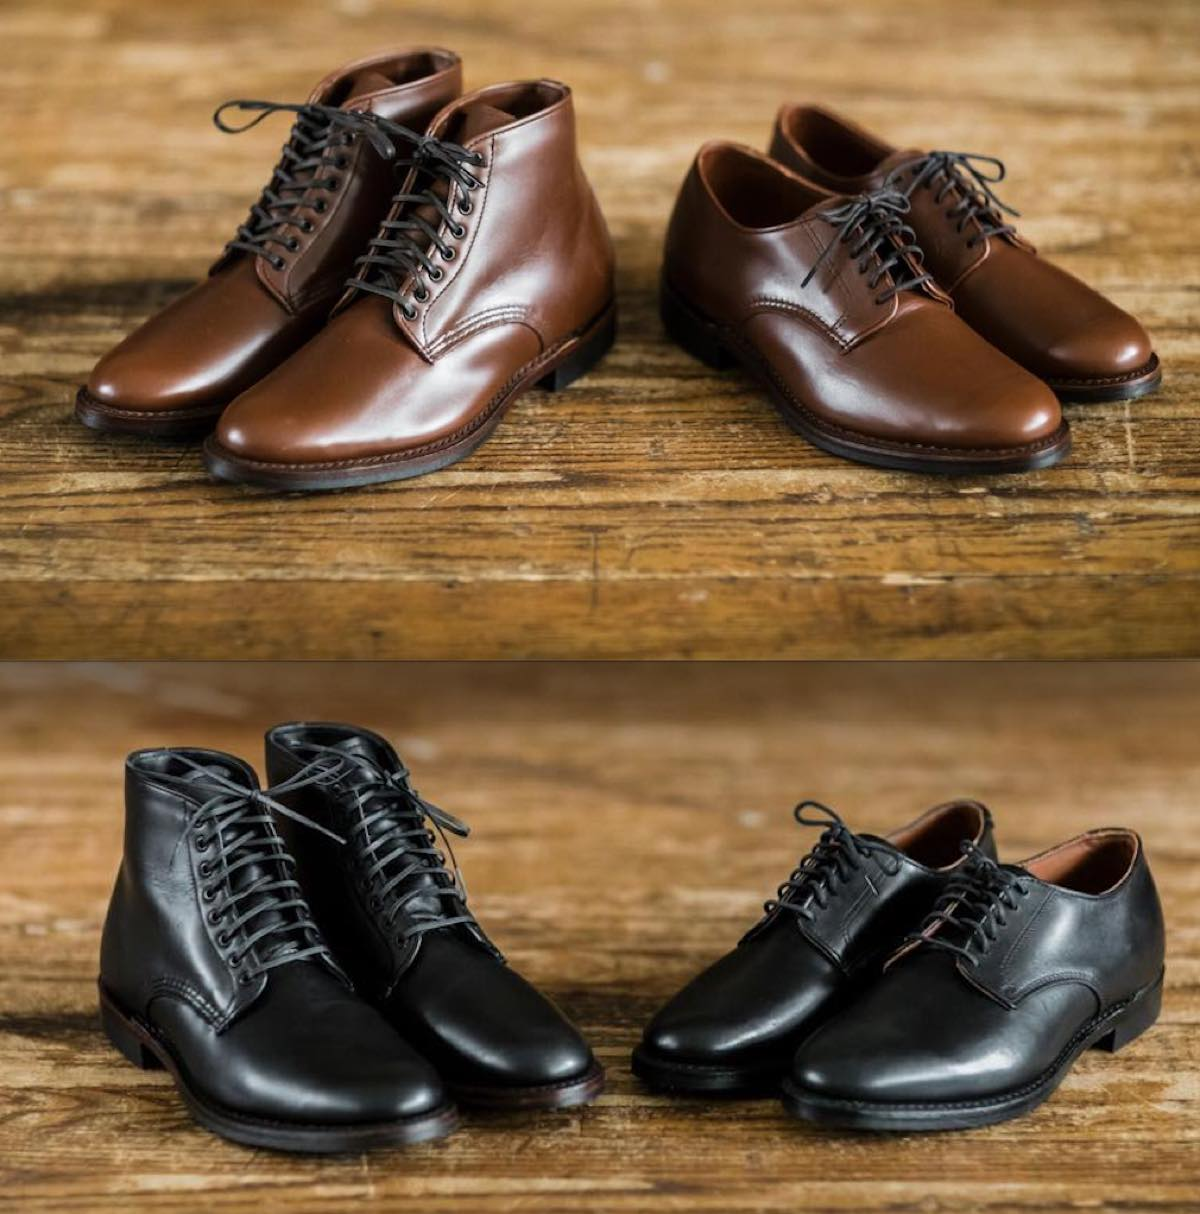 レッドウイング williston collection oxford boots